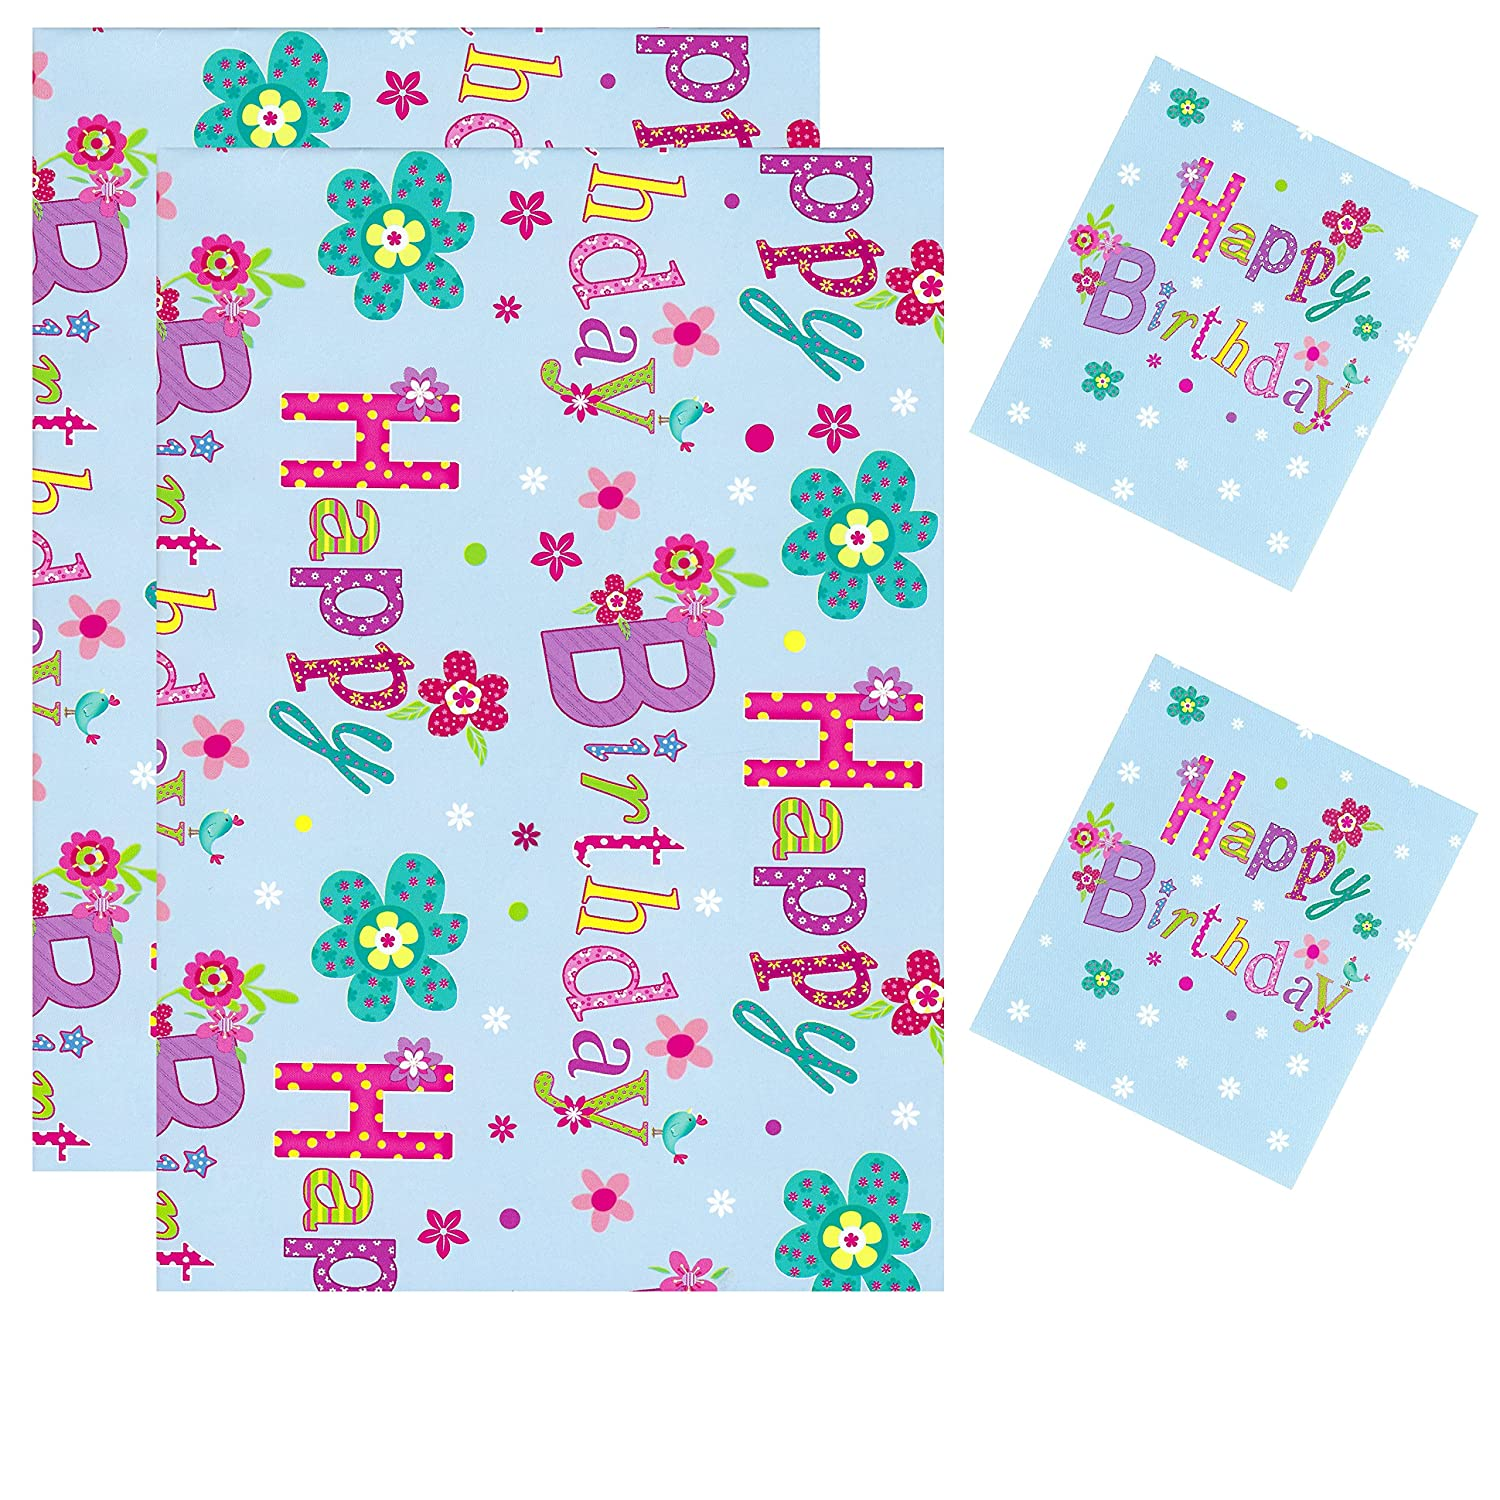 2 Sheets Gift Wrapping Paper With 2 Tags 50cm x 70cm Bestest Happy Birthday D26